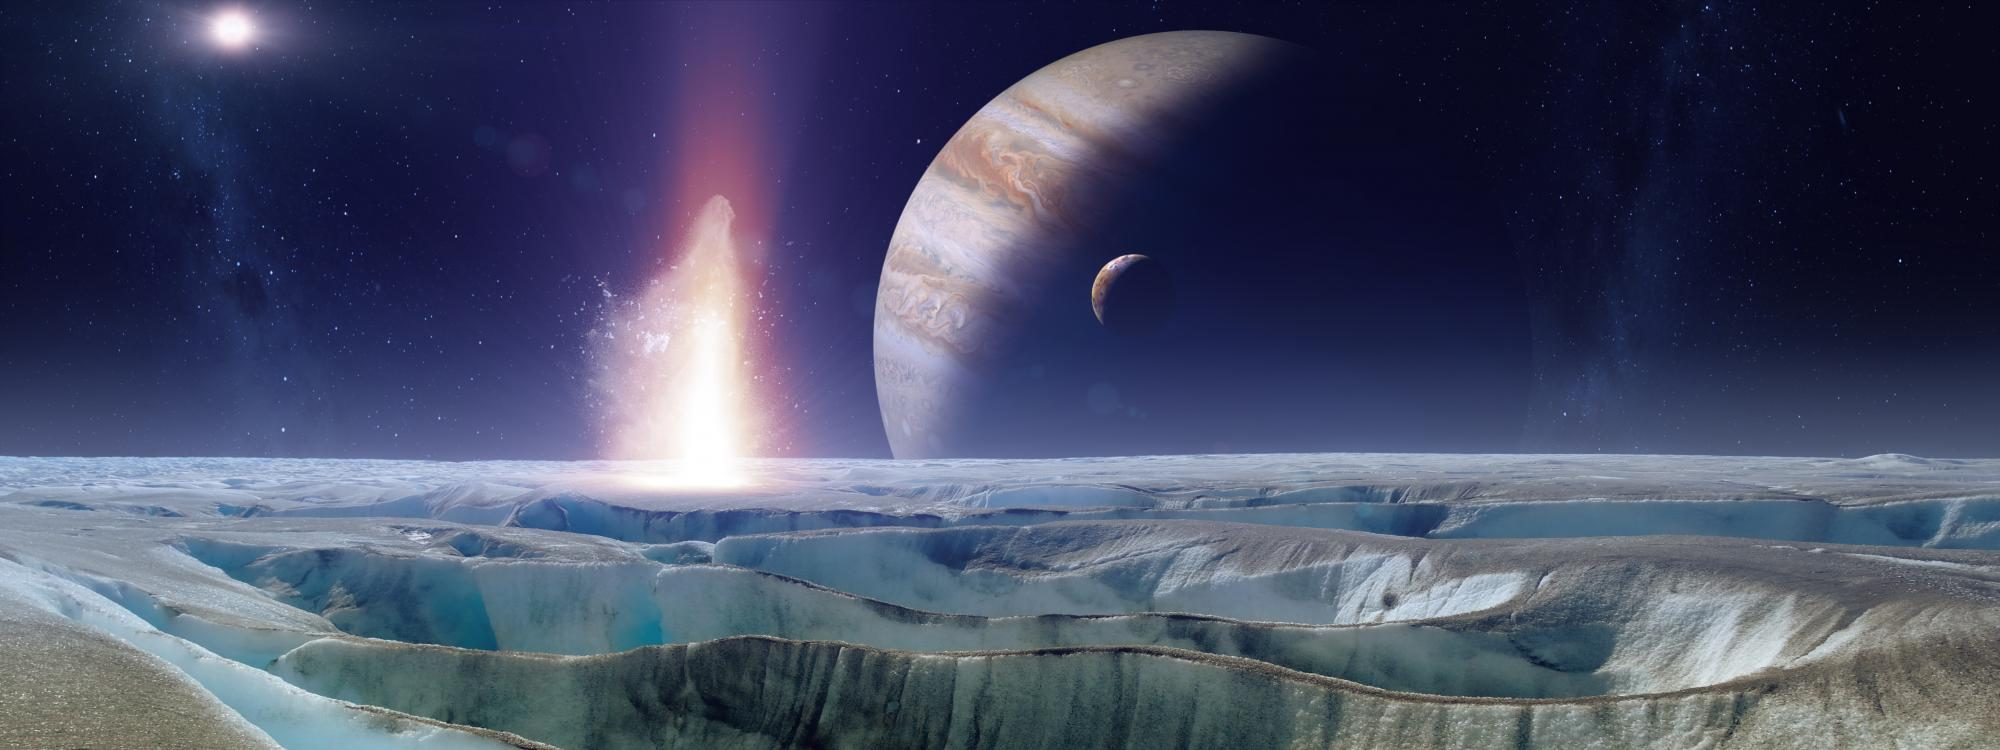 An artist's representation of the view of Jupiter and Io from the icy surface of Europa.